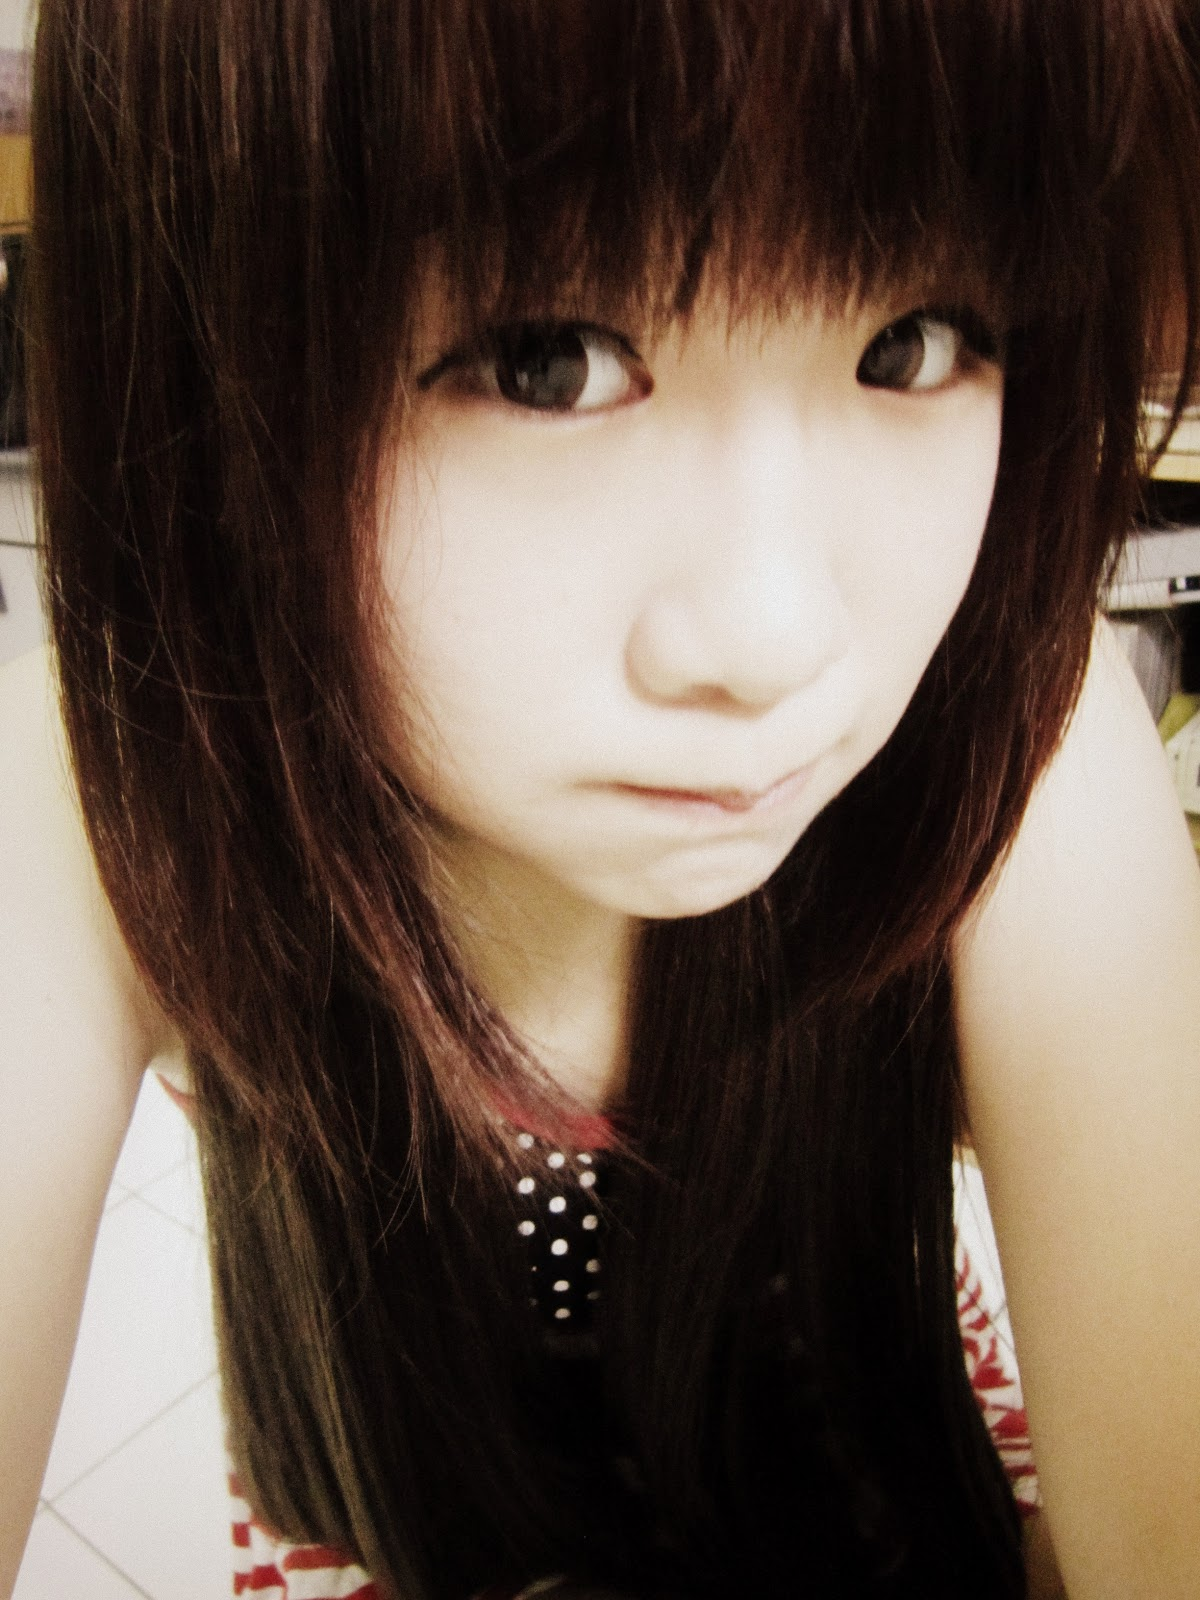 Fascination: ♥ ; Trying Out Le Ulzzang Makeup